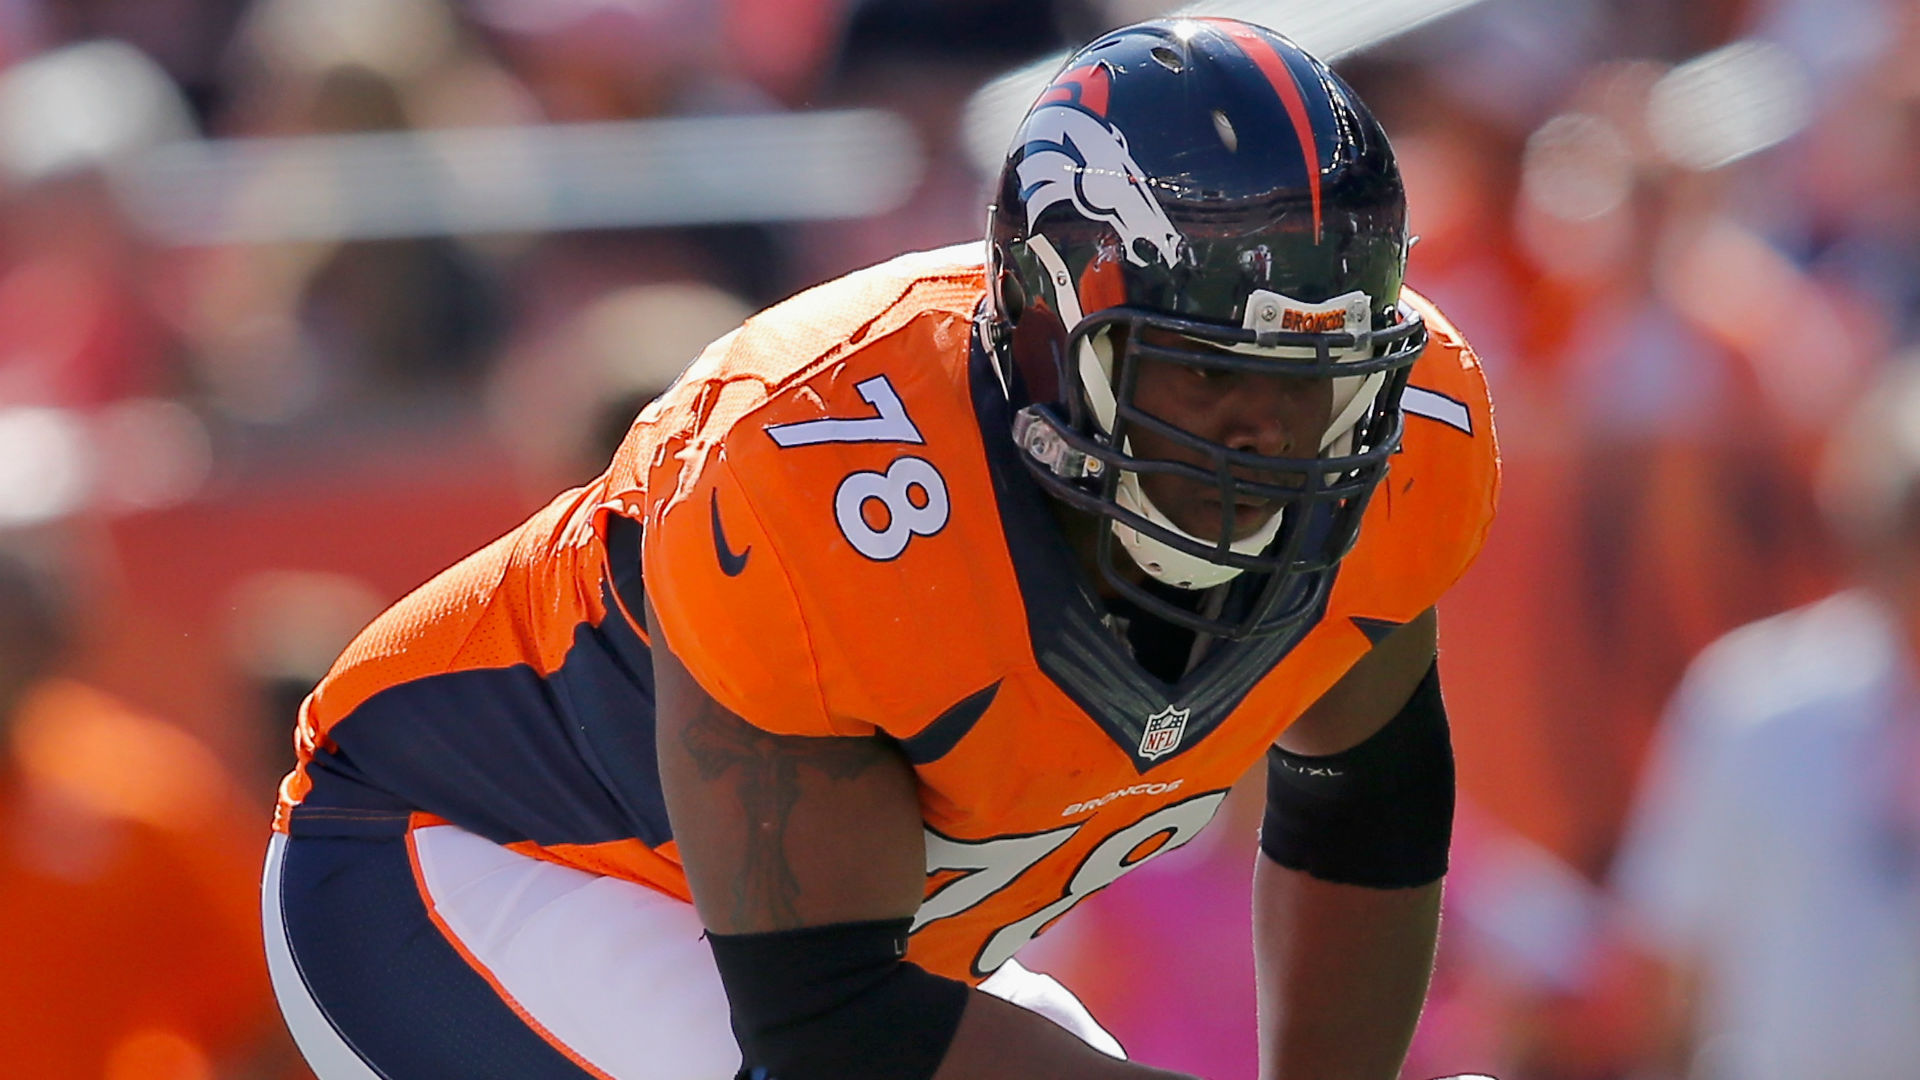 Ryan Clady Retires After 9-Year Career with Broncos, Jets